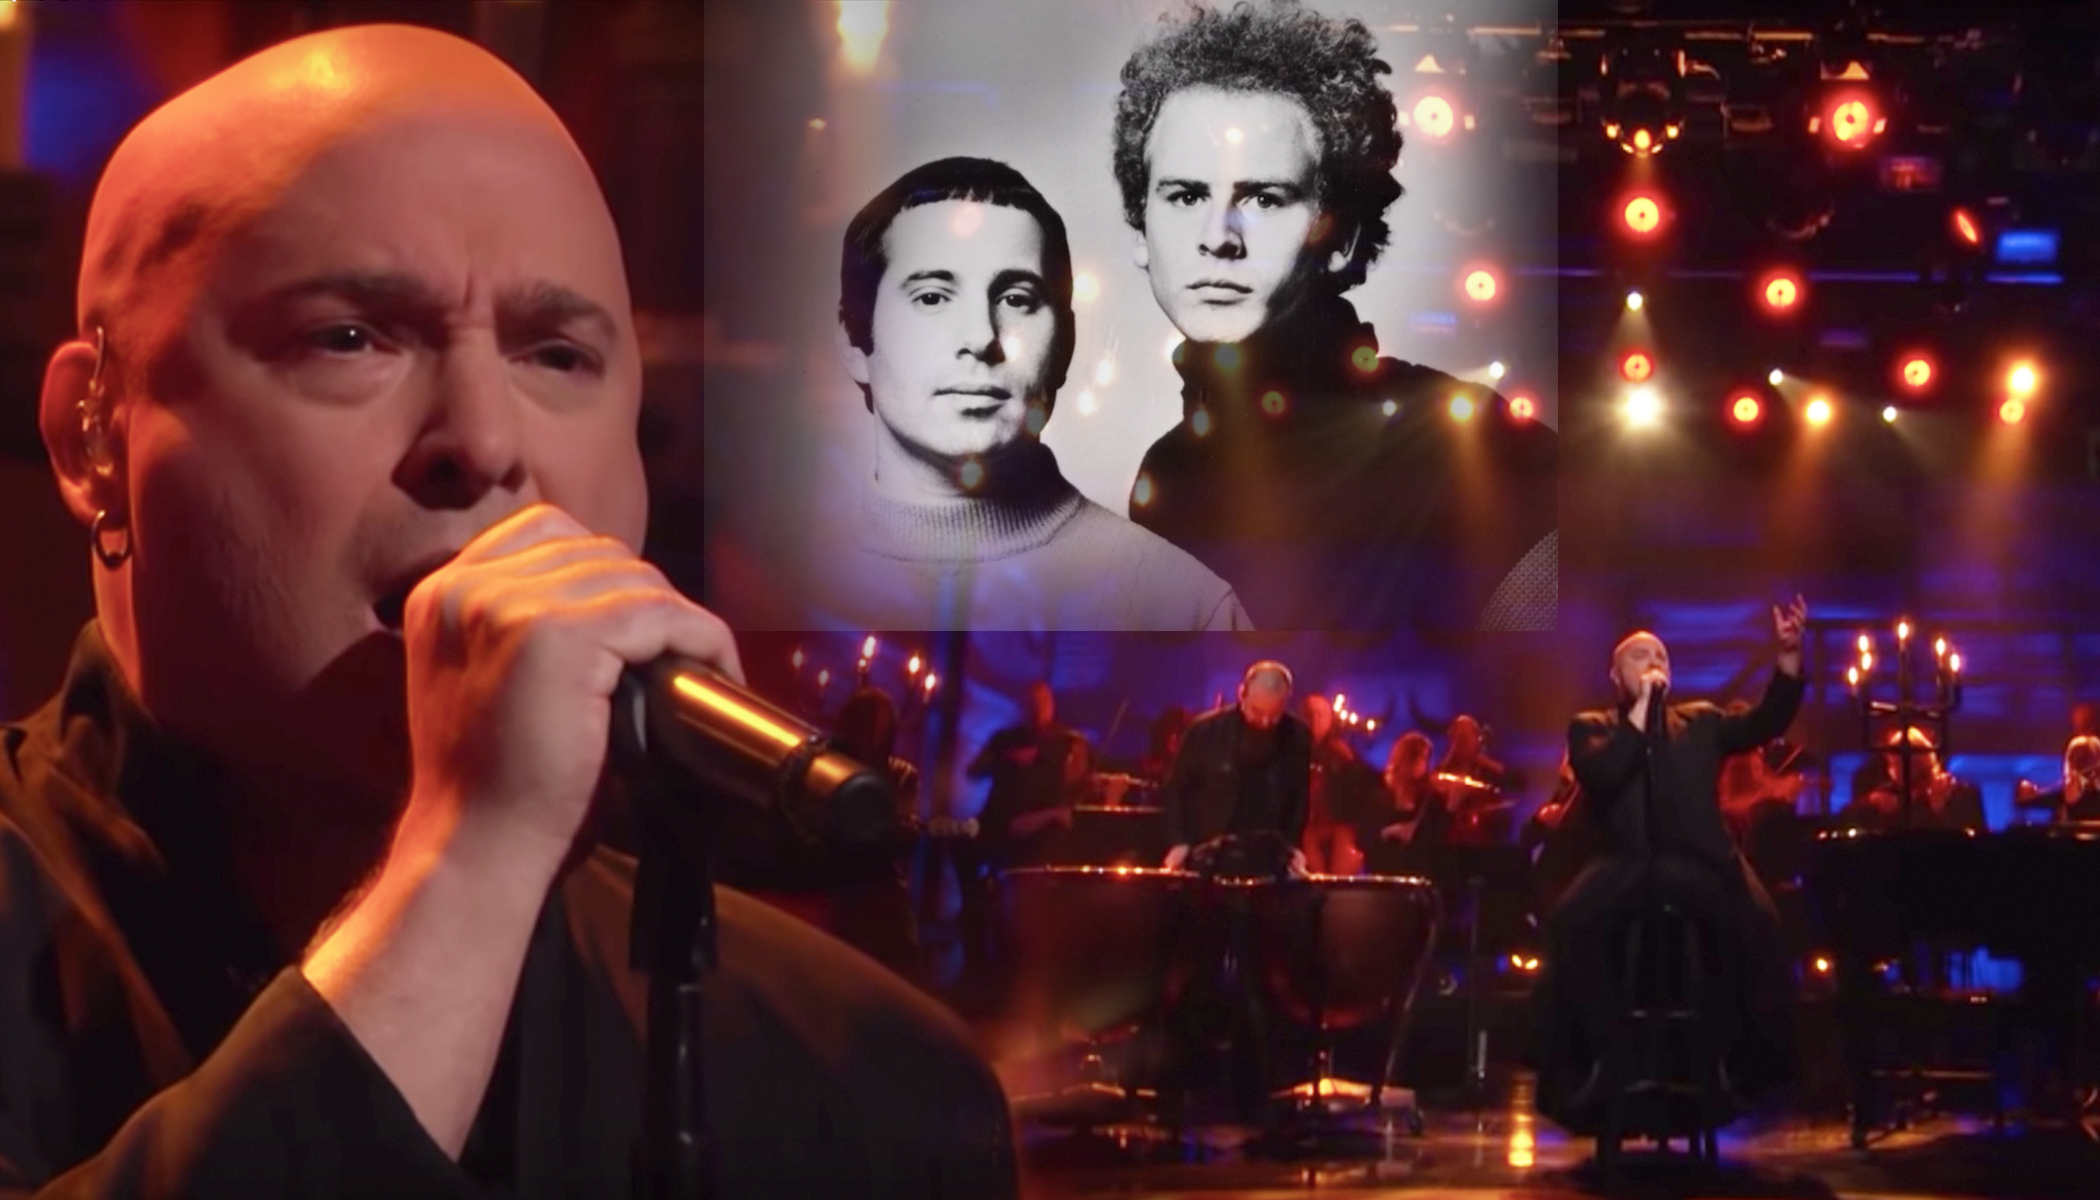 A Look Back: Heavy Metal Singer's Chilling Cover of 'Sound of Silence' Stuns Audience